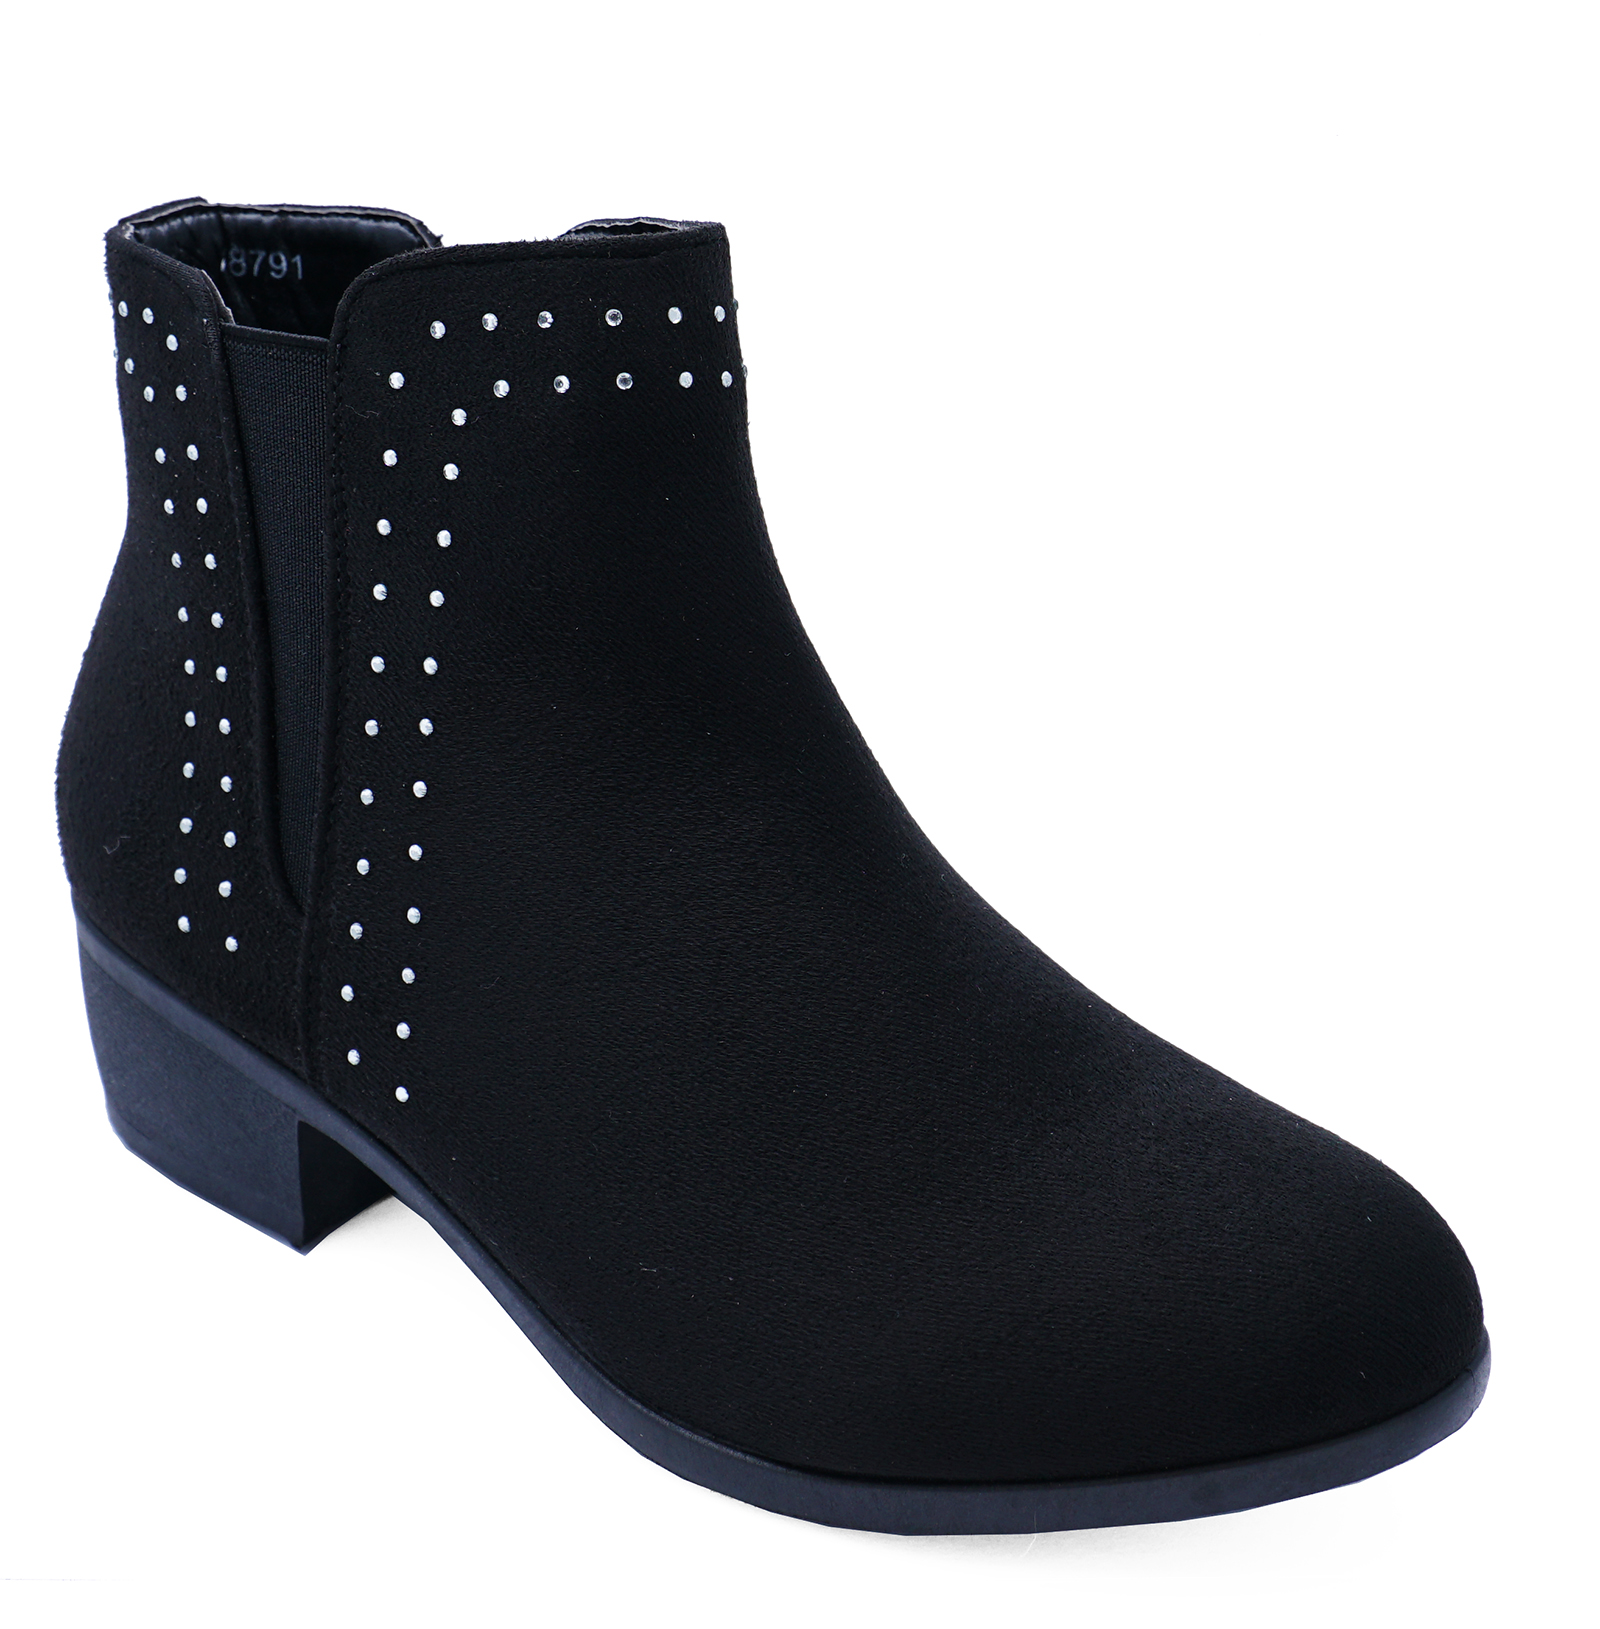 LADIES-WOMENS-LOW-BLOCK-HEEL-ANKLE-STUDDED-DIAMANTE-CHELSEA-BOOTS-SHOES-SIZE-3-8 thumbnail 6